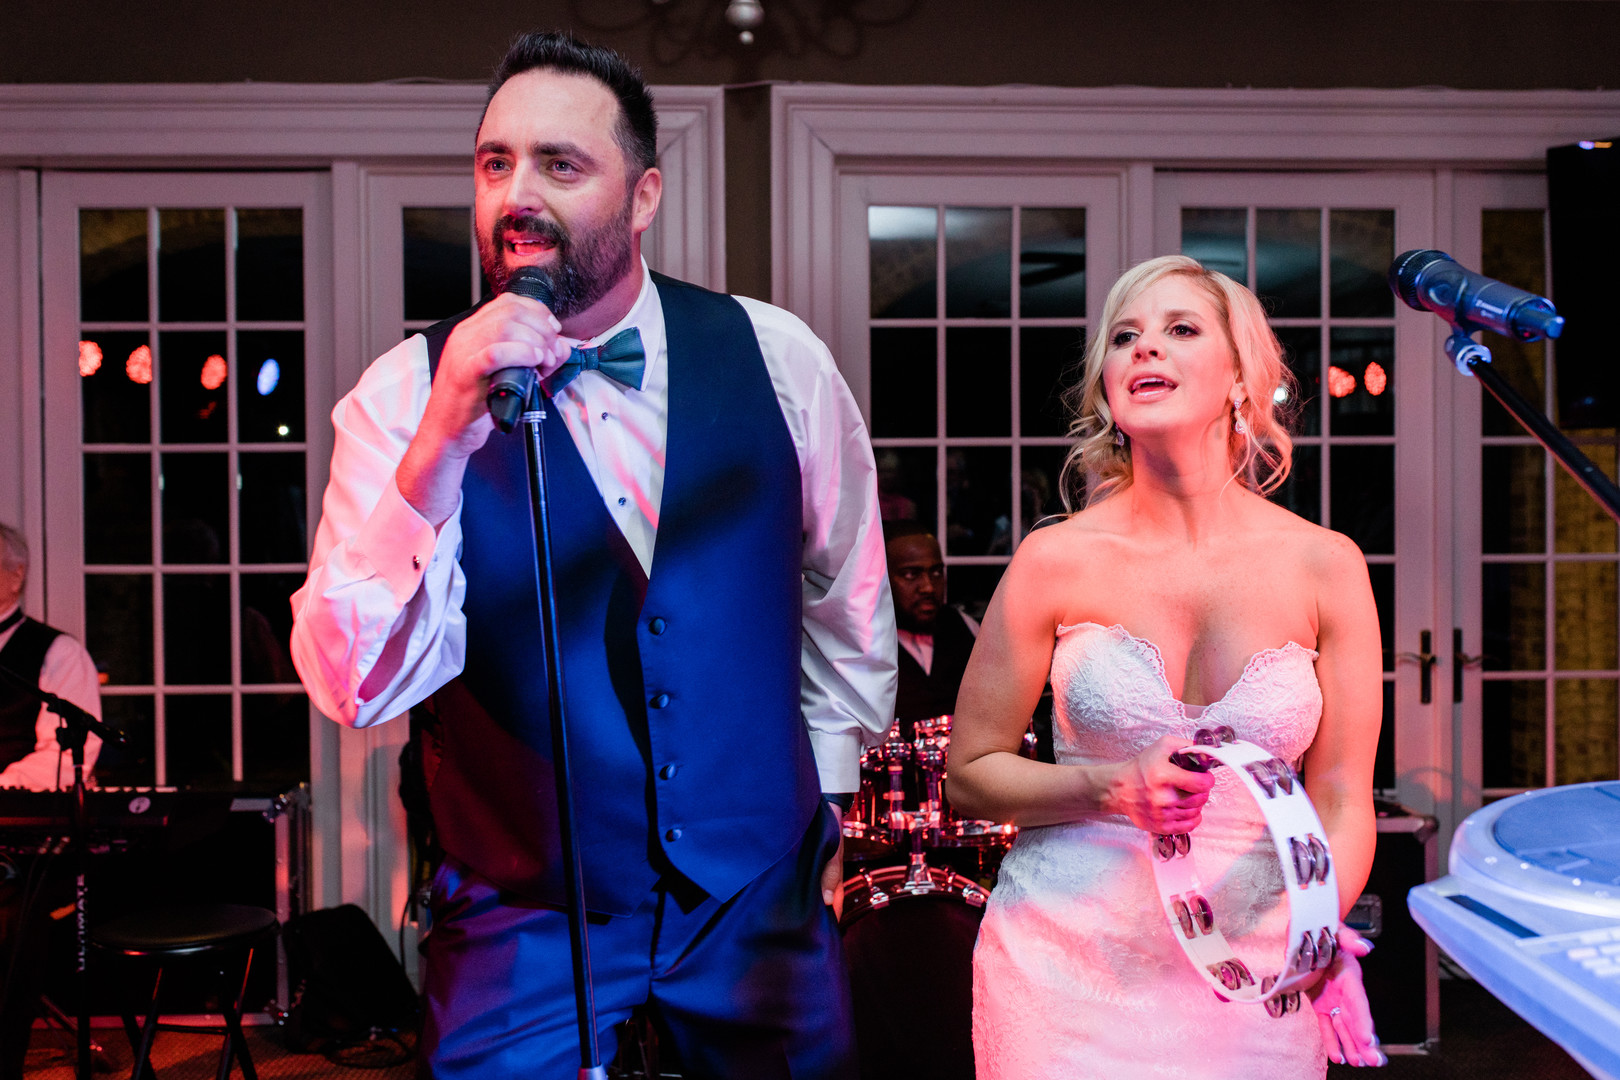 Sheorn_Snijders_CatherineAnnPhotography_catherineannphotographywedding31018carolineeric641_big.jpg